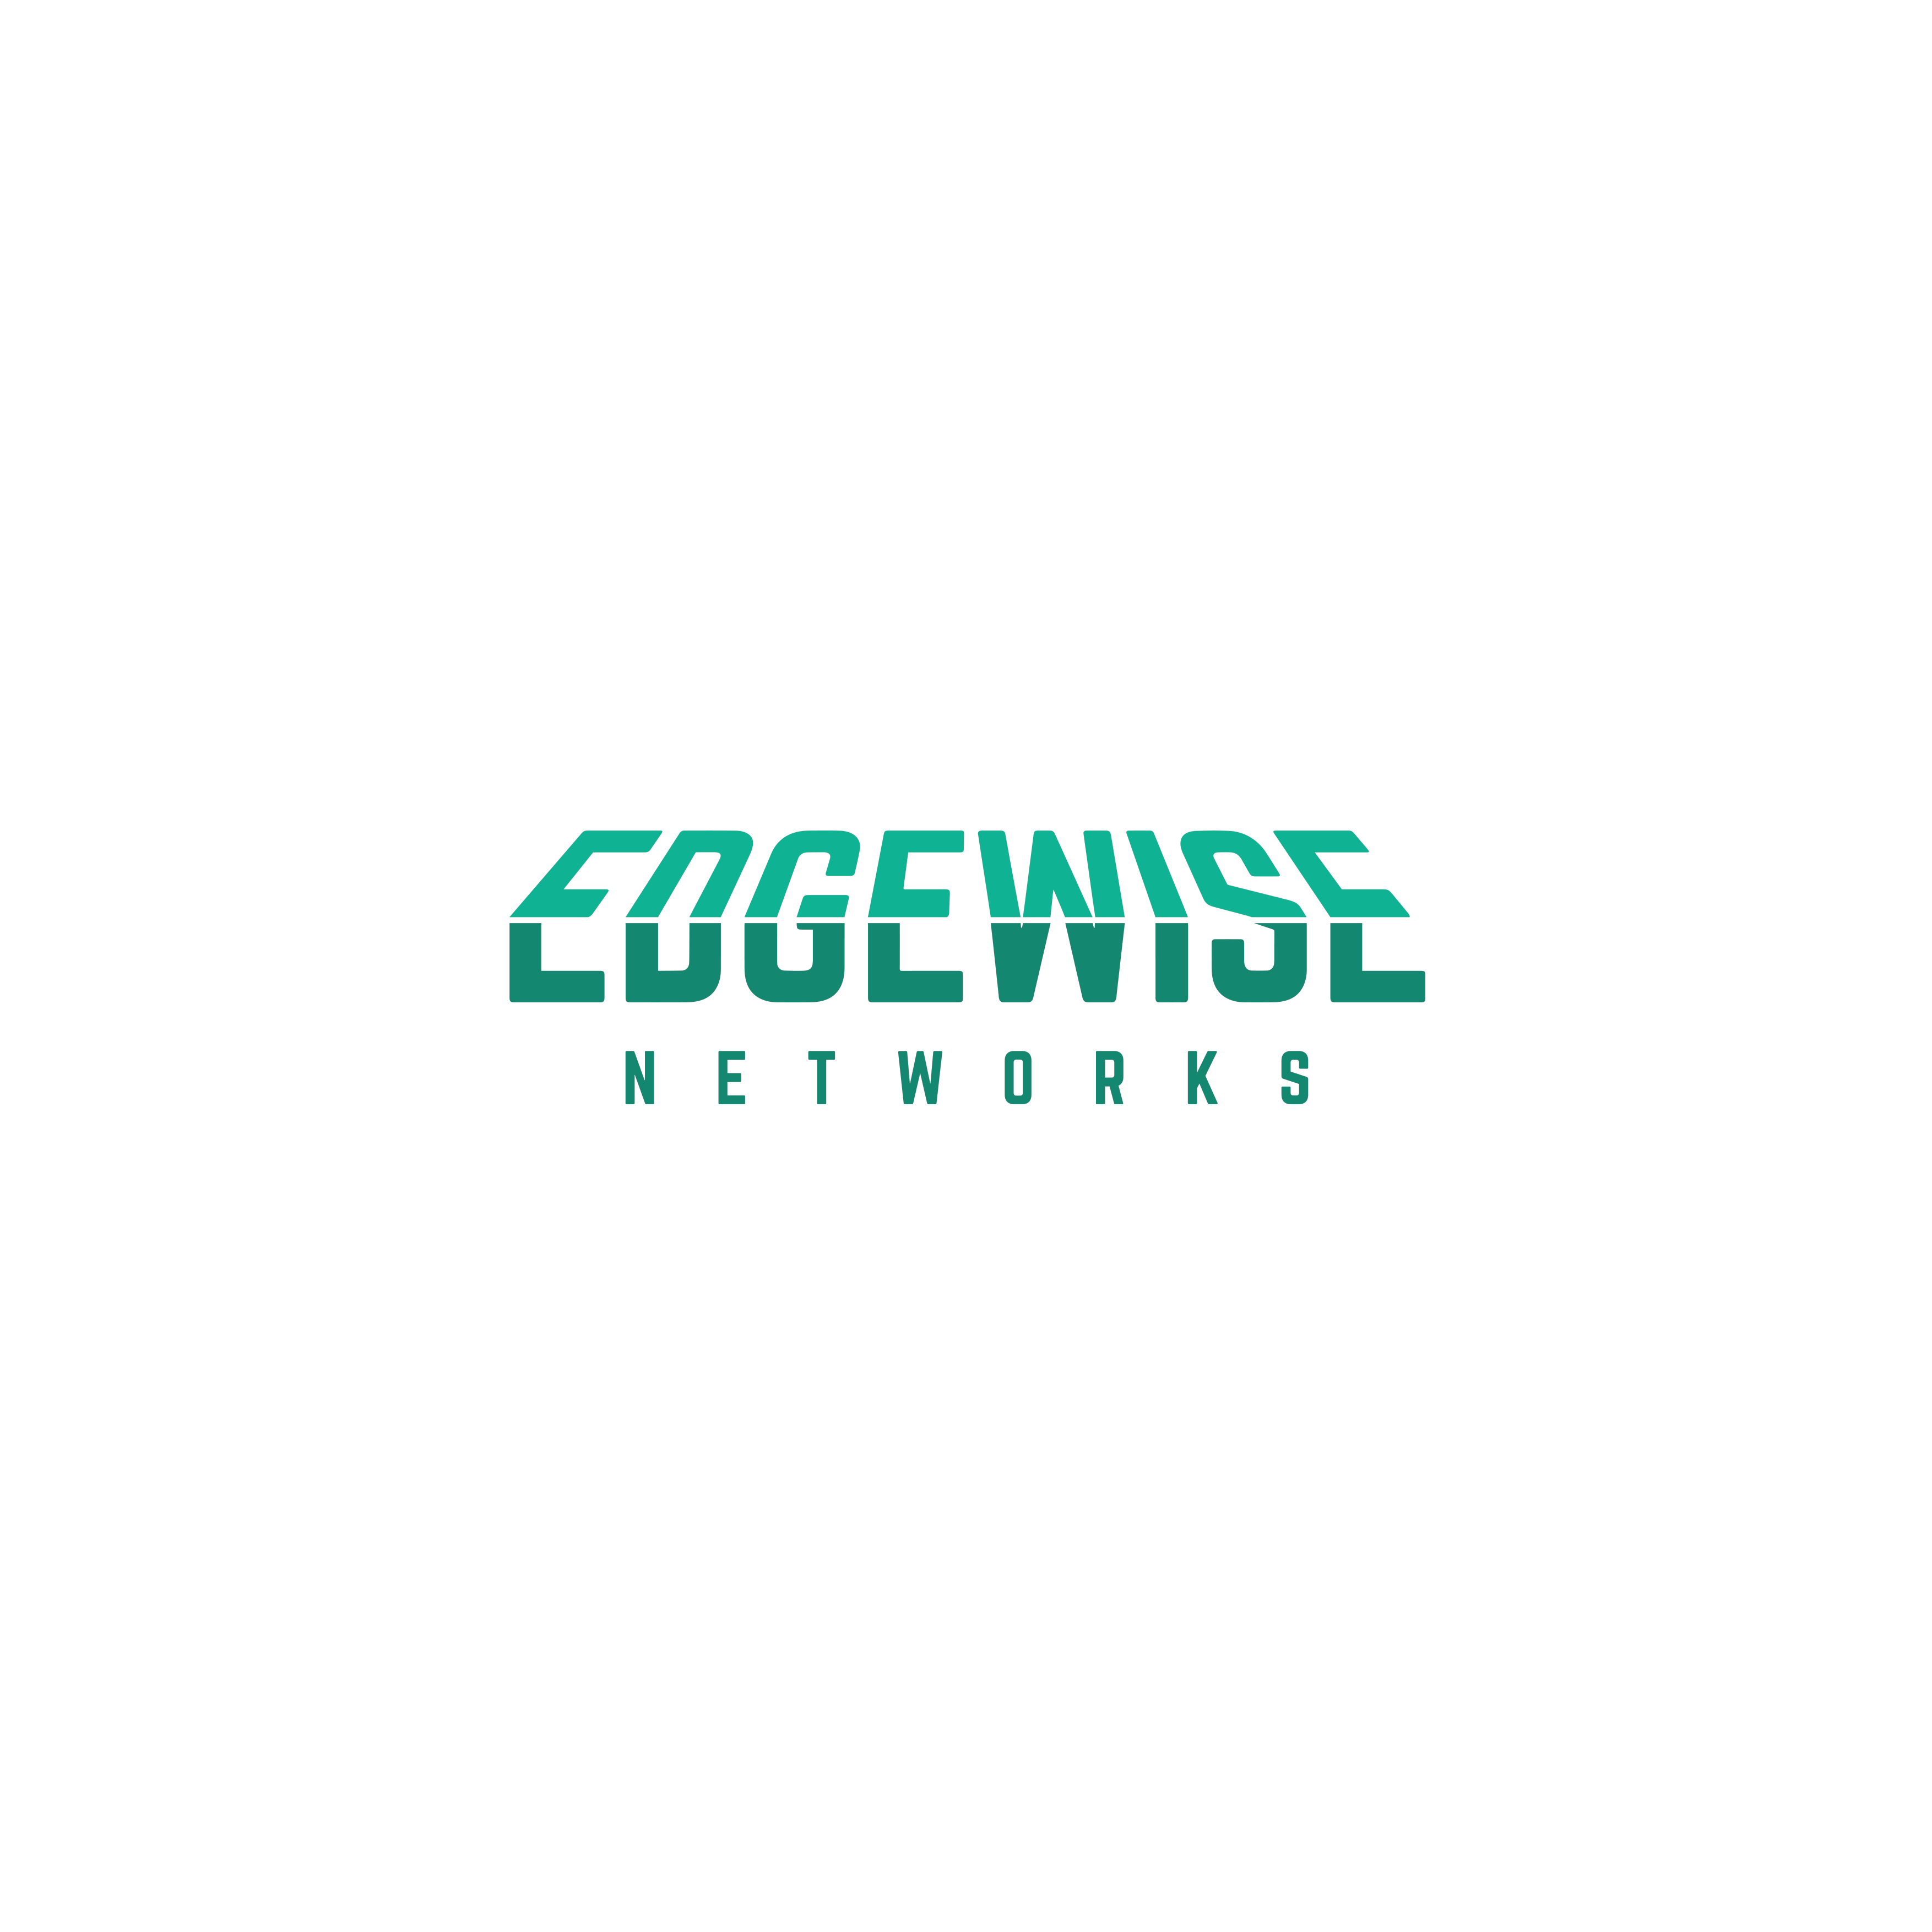 Logo for cutting edge network security company